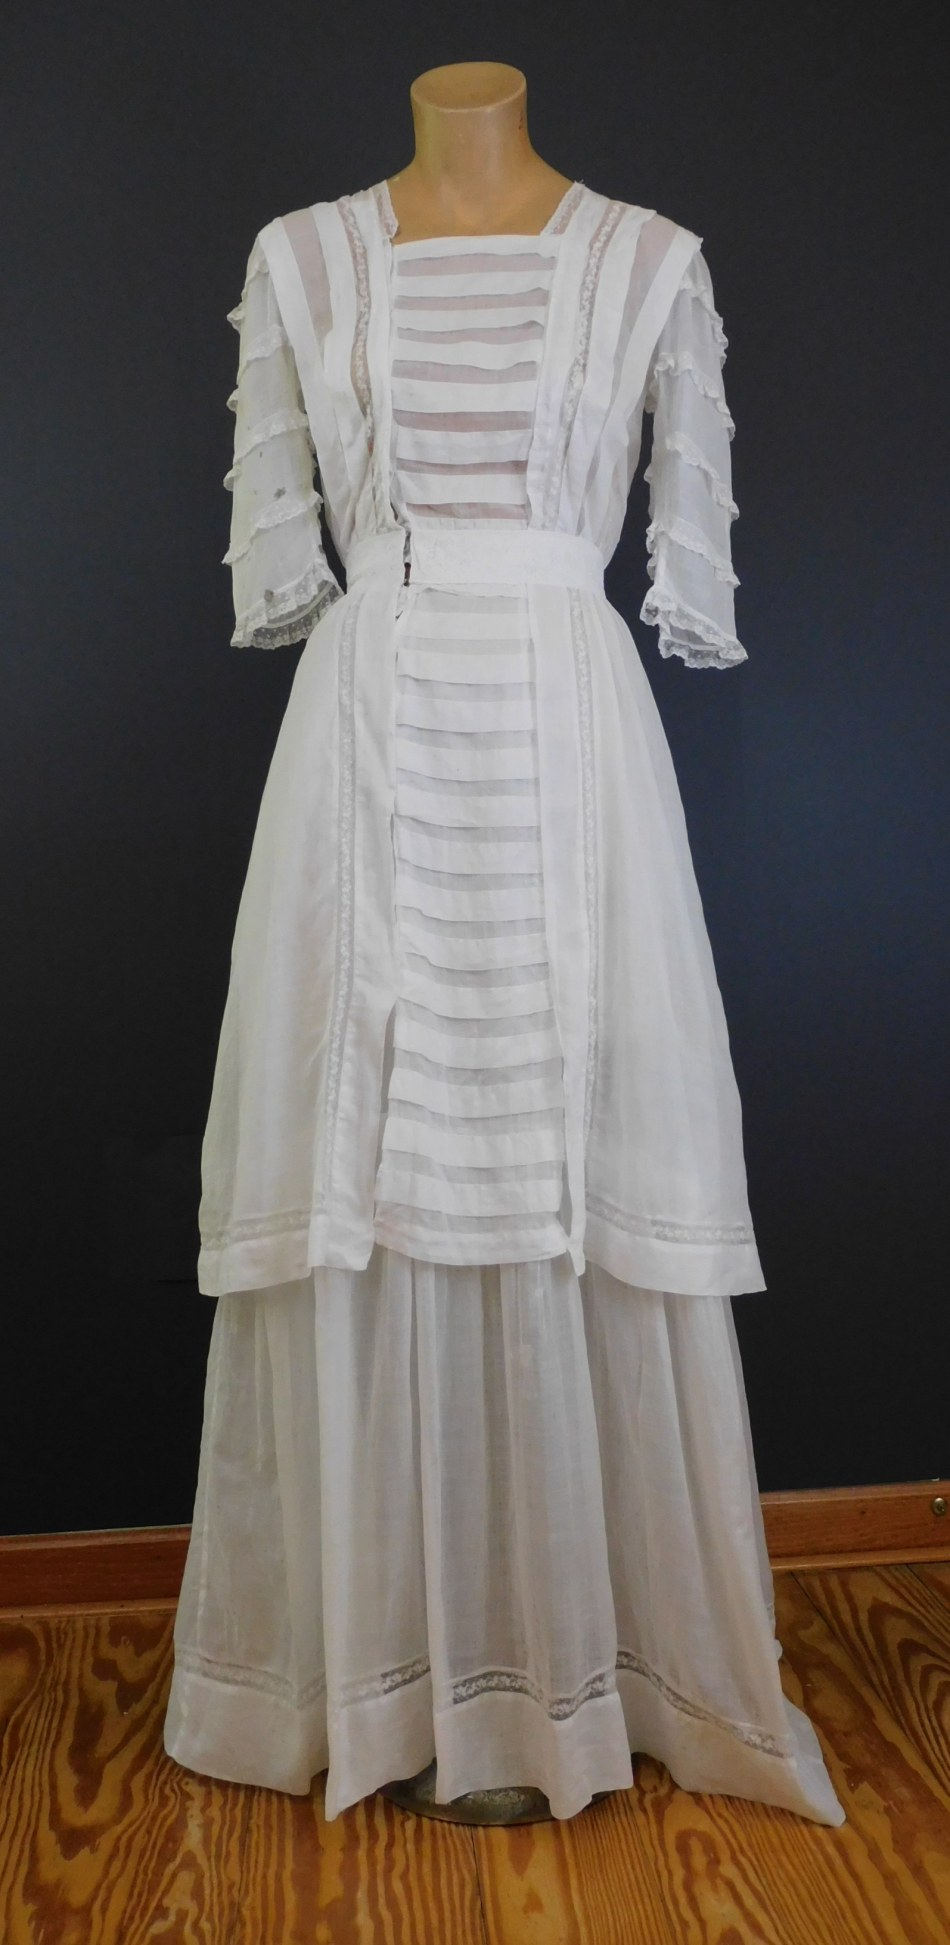 Vintage Edwardian White Cotton Dress, 2 layer skirt, fits 34 inch bust, with issues